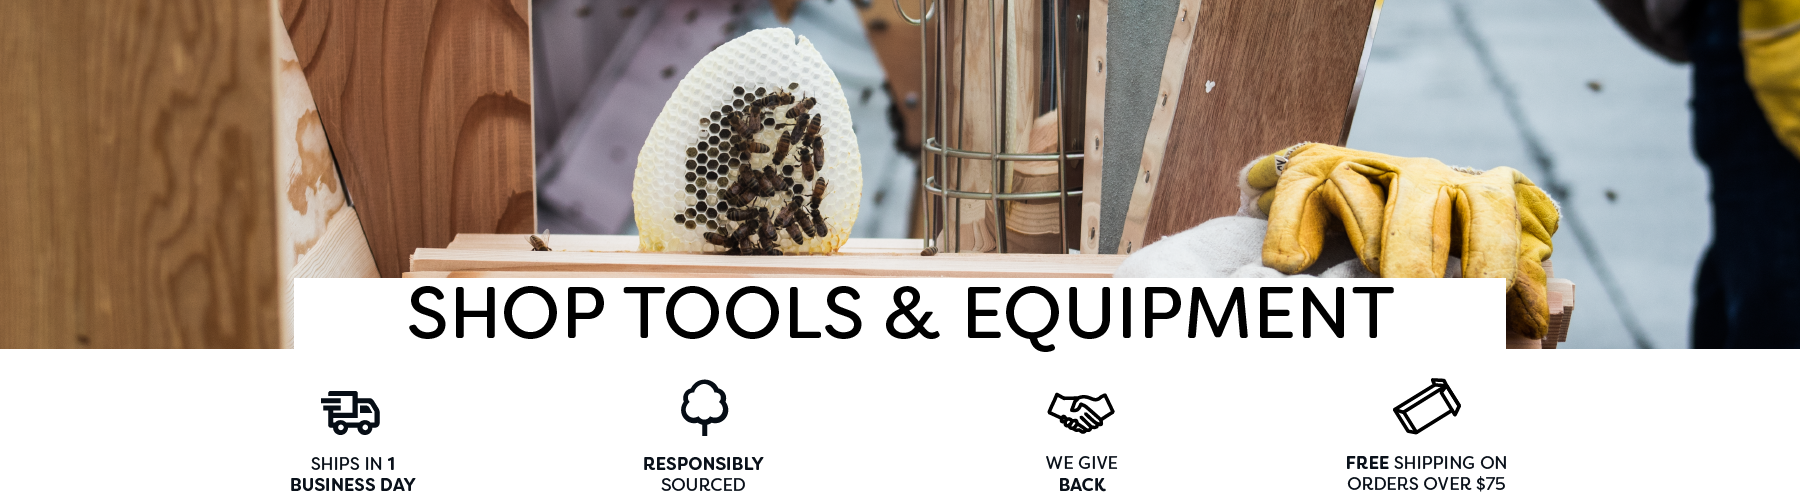 Beehive starter kits, feeders, tools, brushes, smokers, honey harvesting equipment that are essential for a beekeeper! FREE SHIPPING on orders over $75 to the contiguous 48 states.